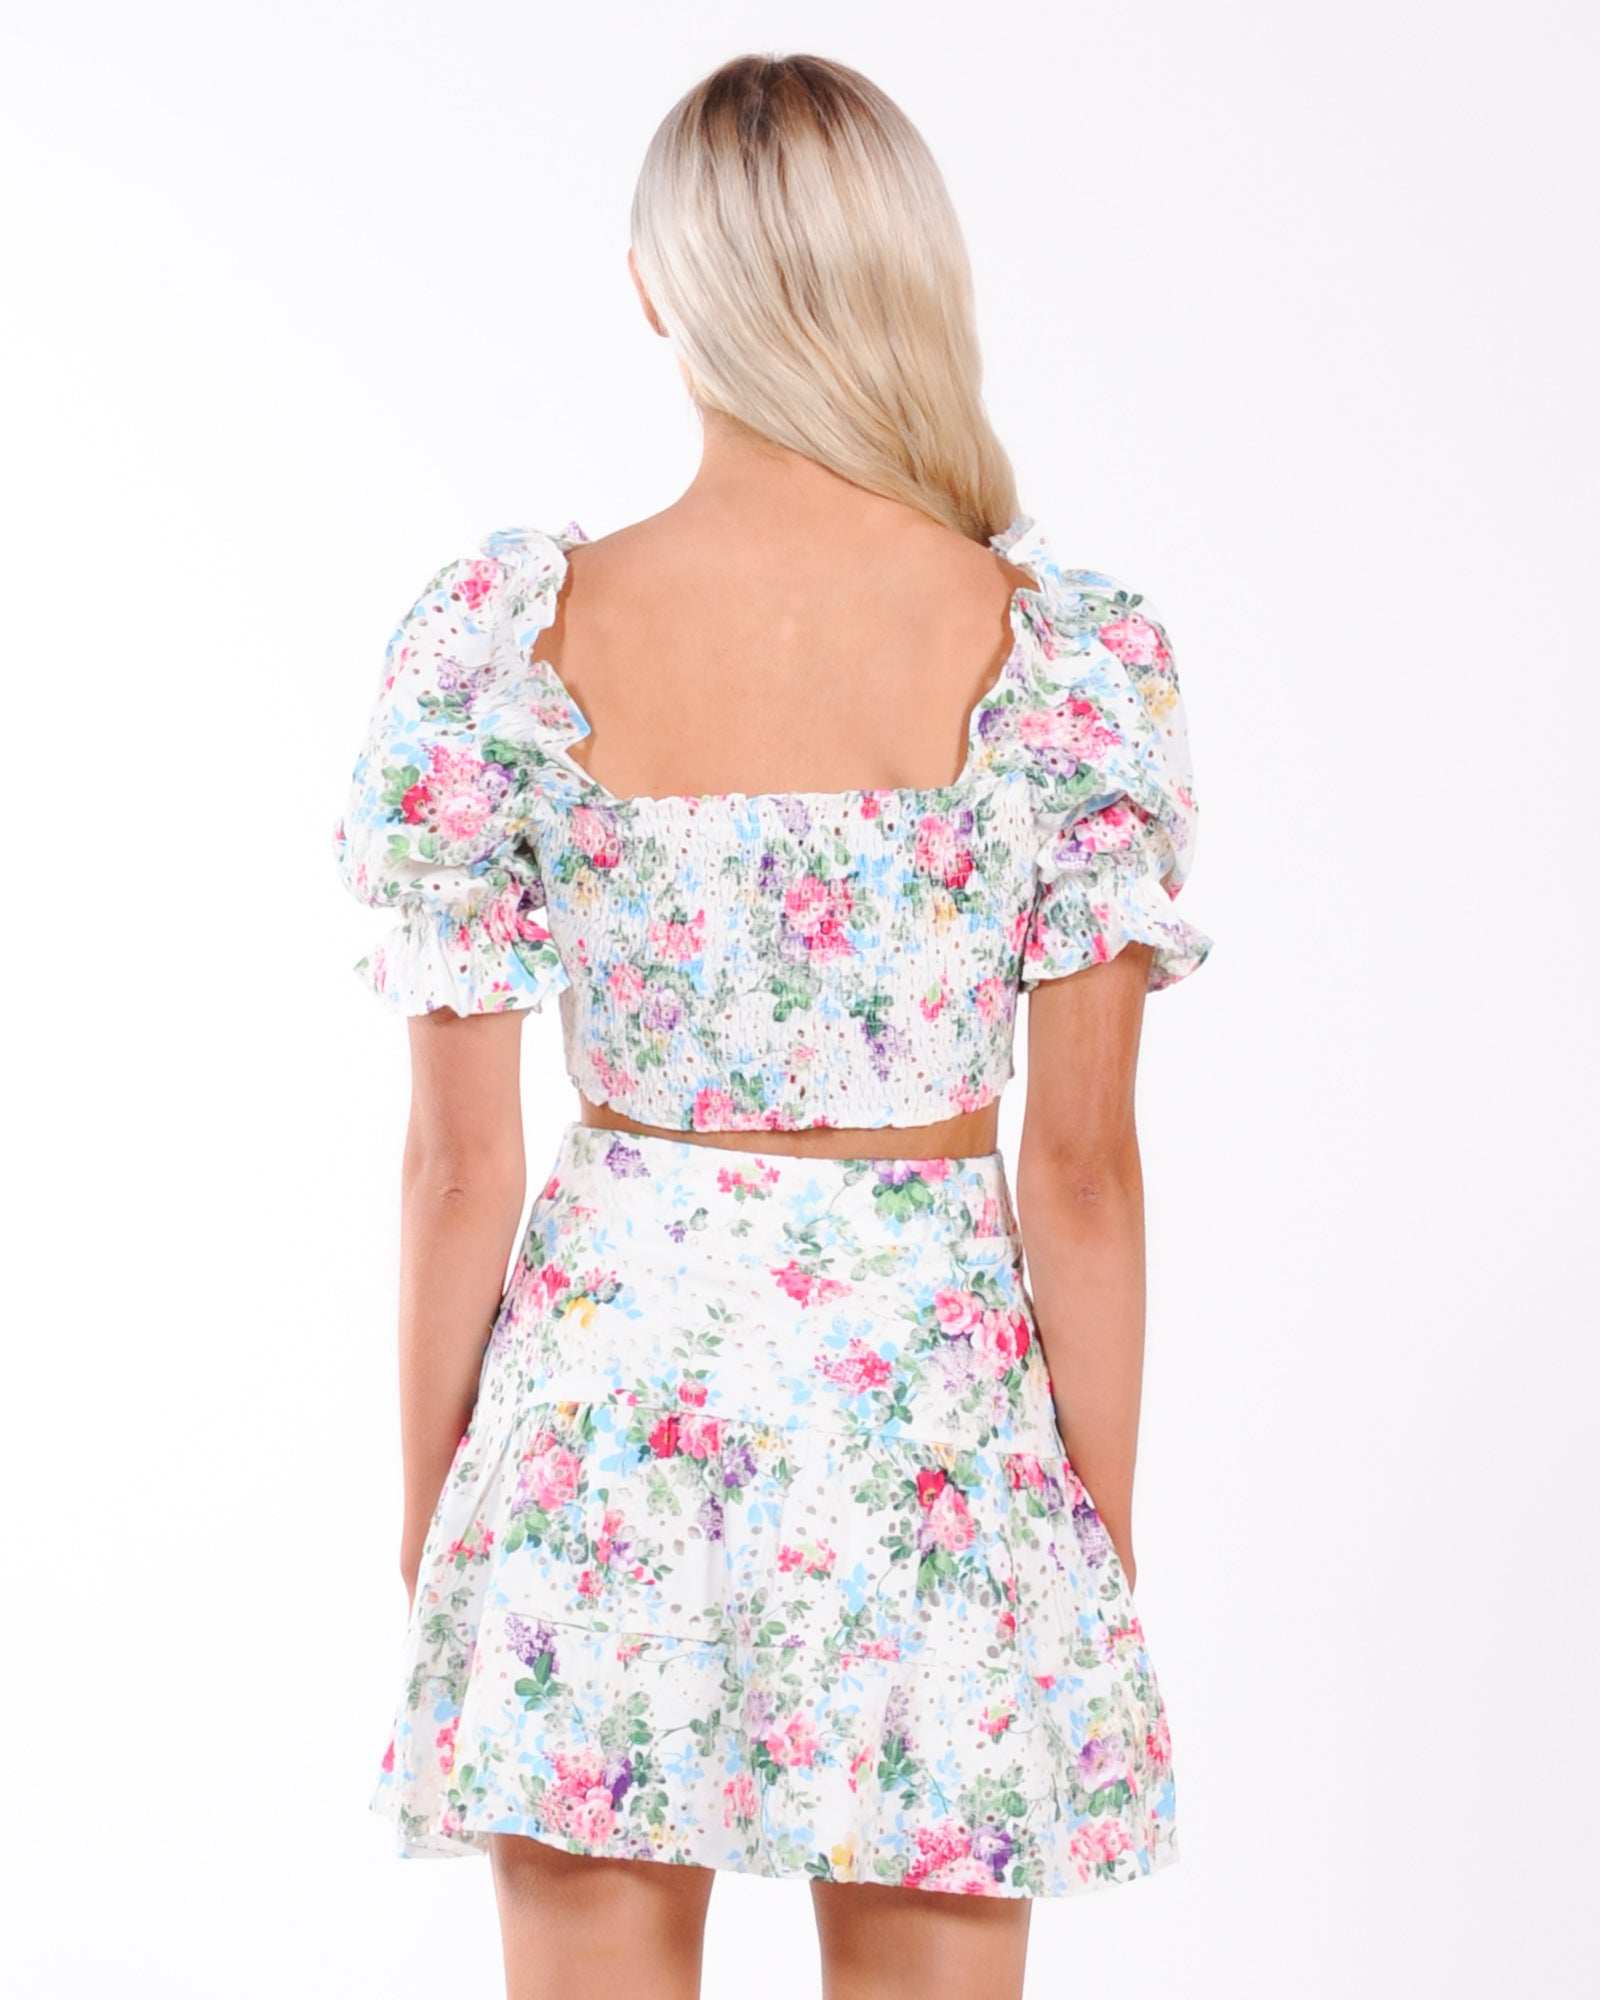 Sndys Bahama Top - White Floral